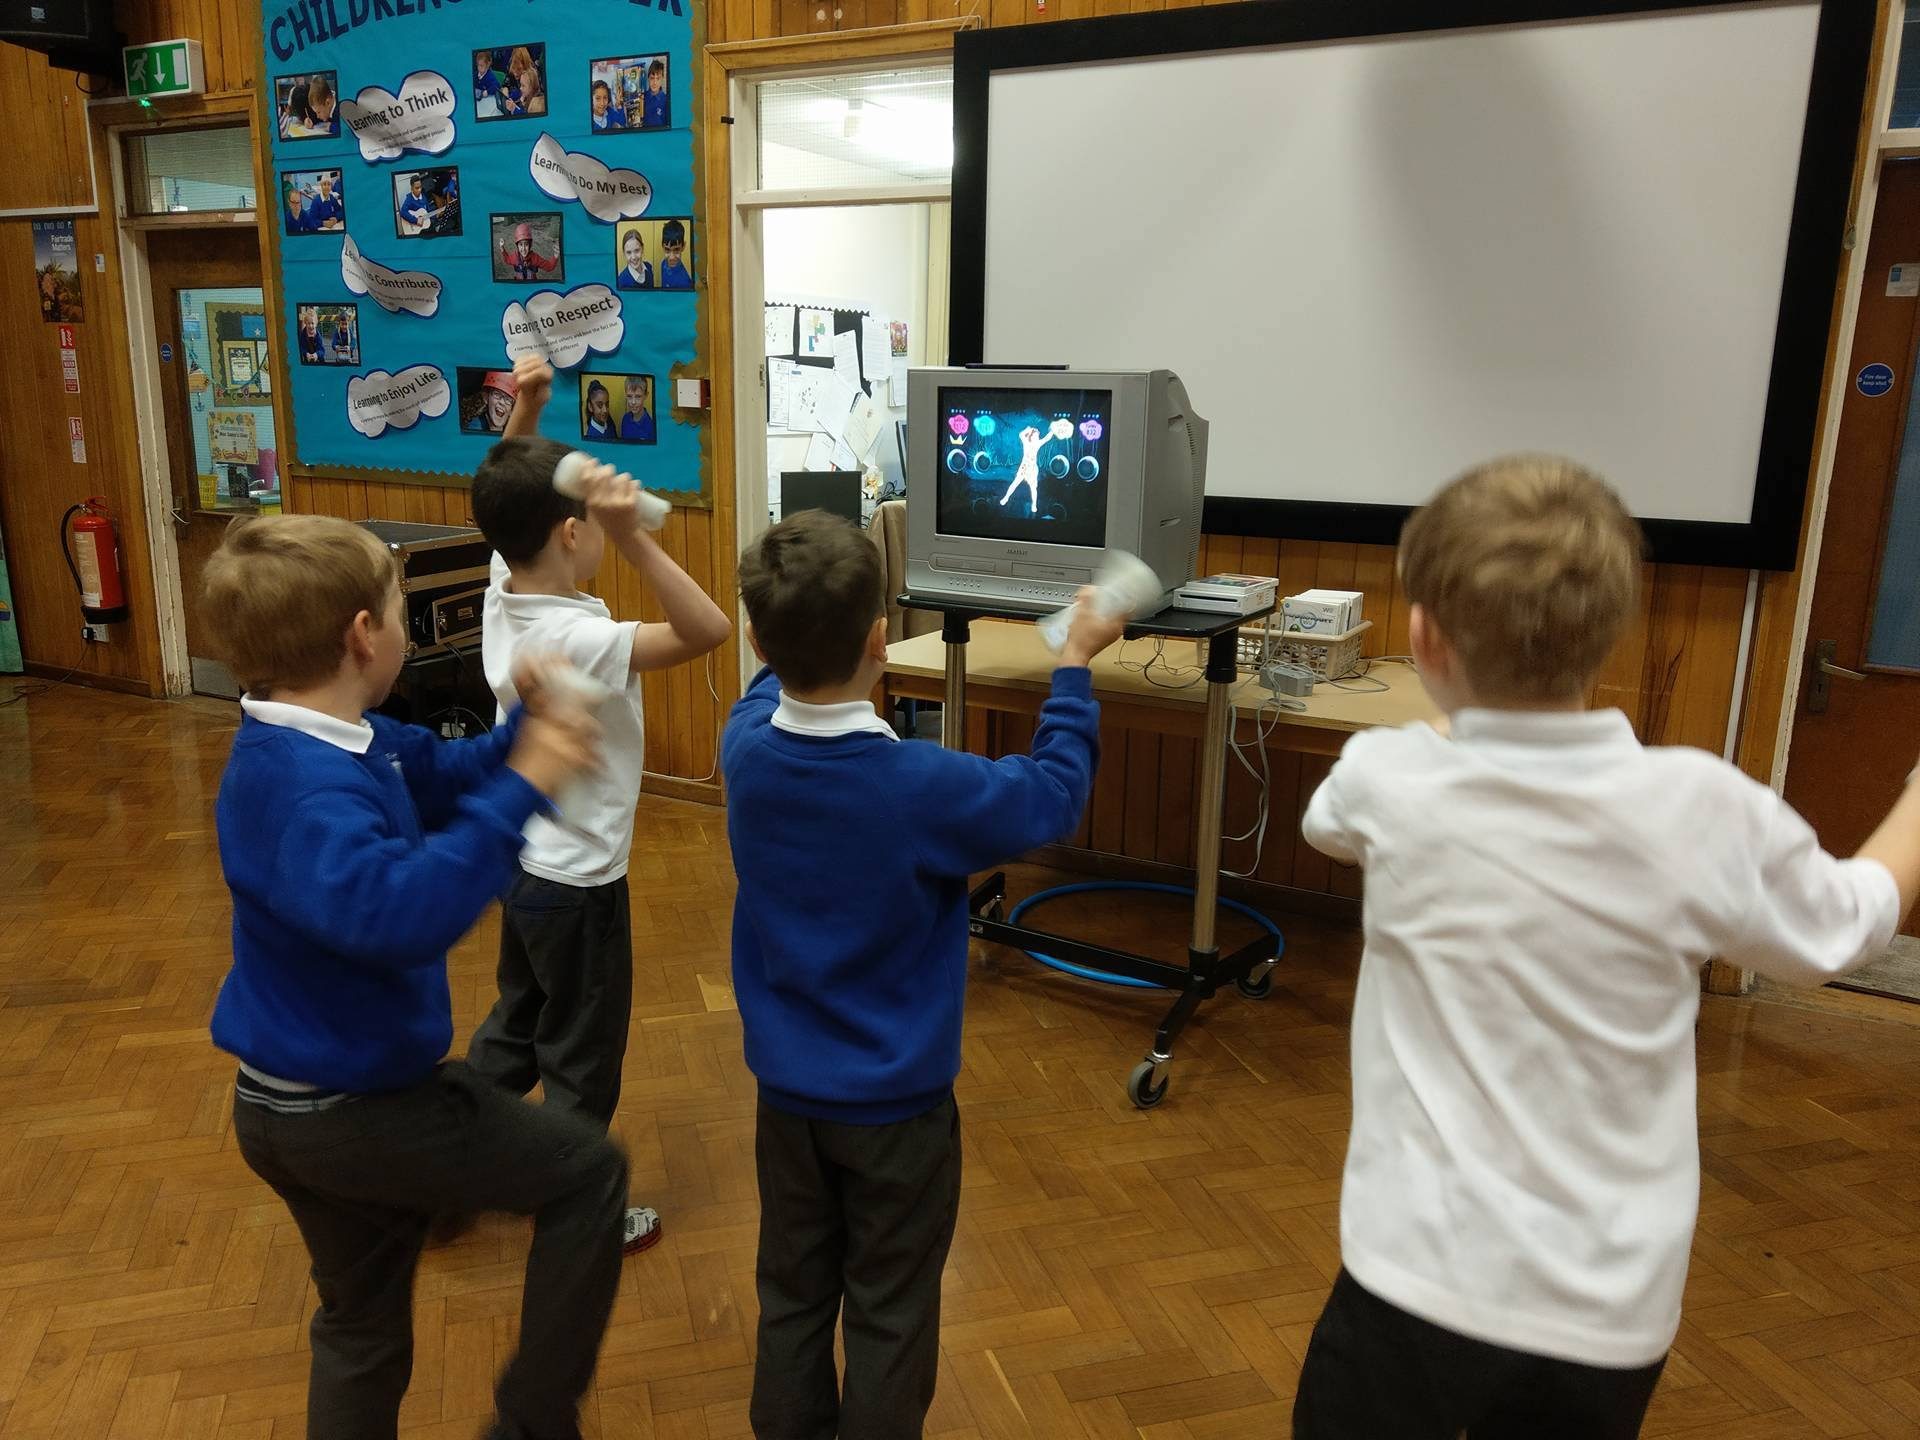 The children dancing on our Nintendo Wii